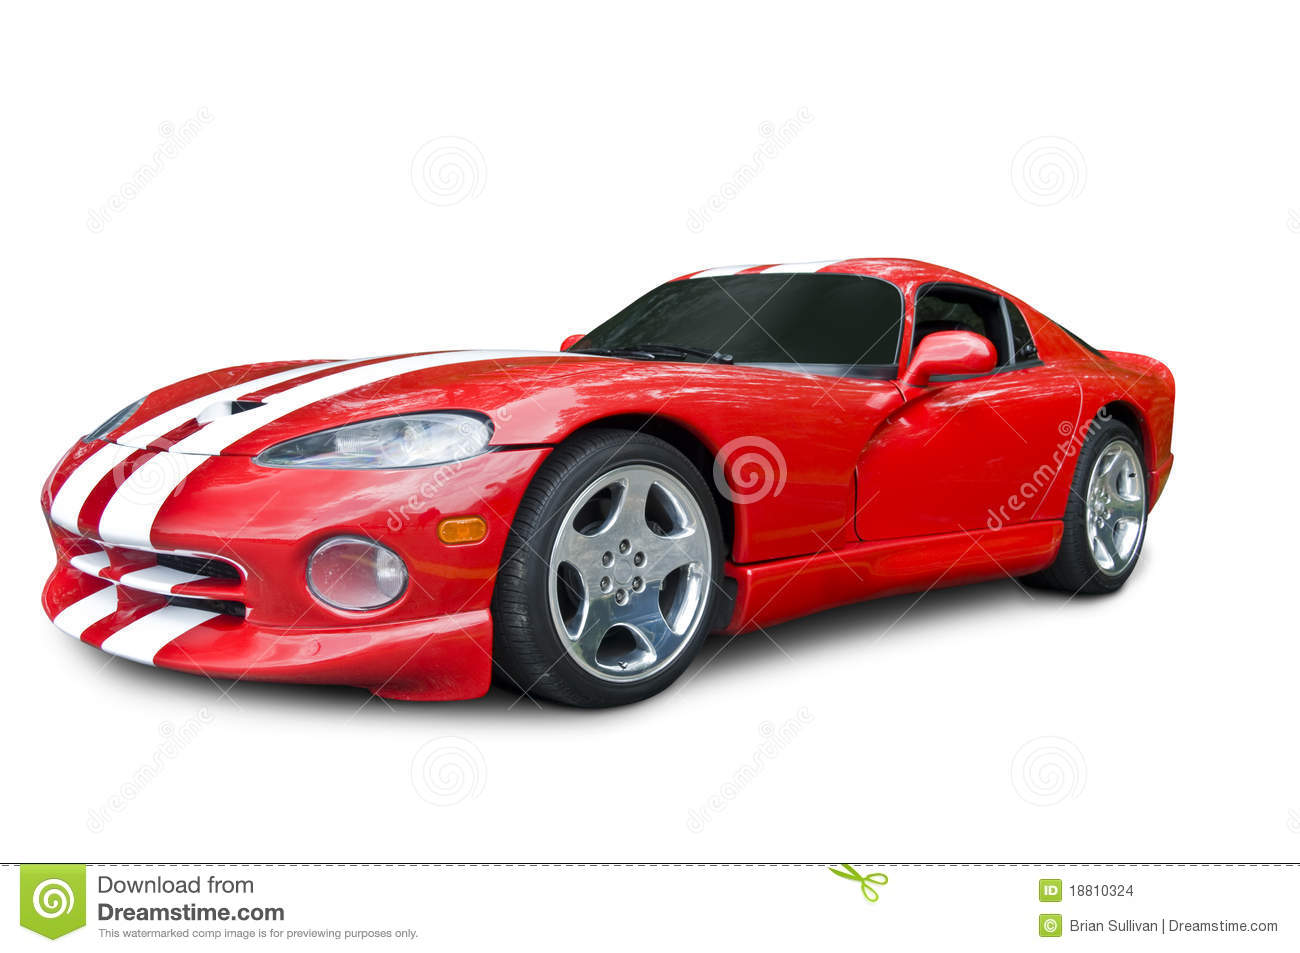 Red Dodge Viper Sports Car Stock Images - Image: 18810324